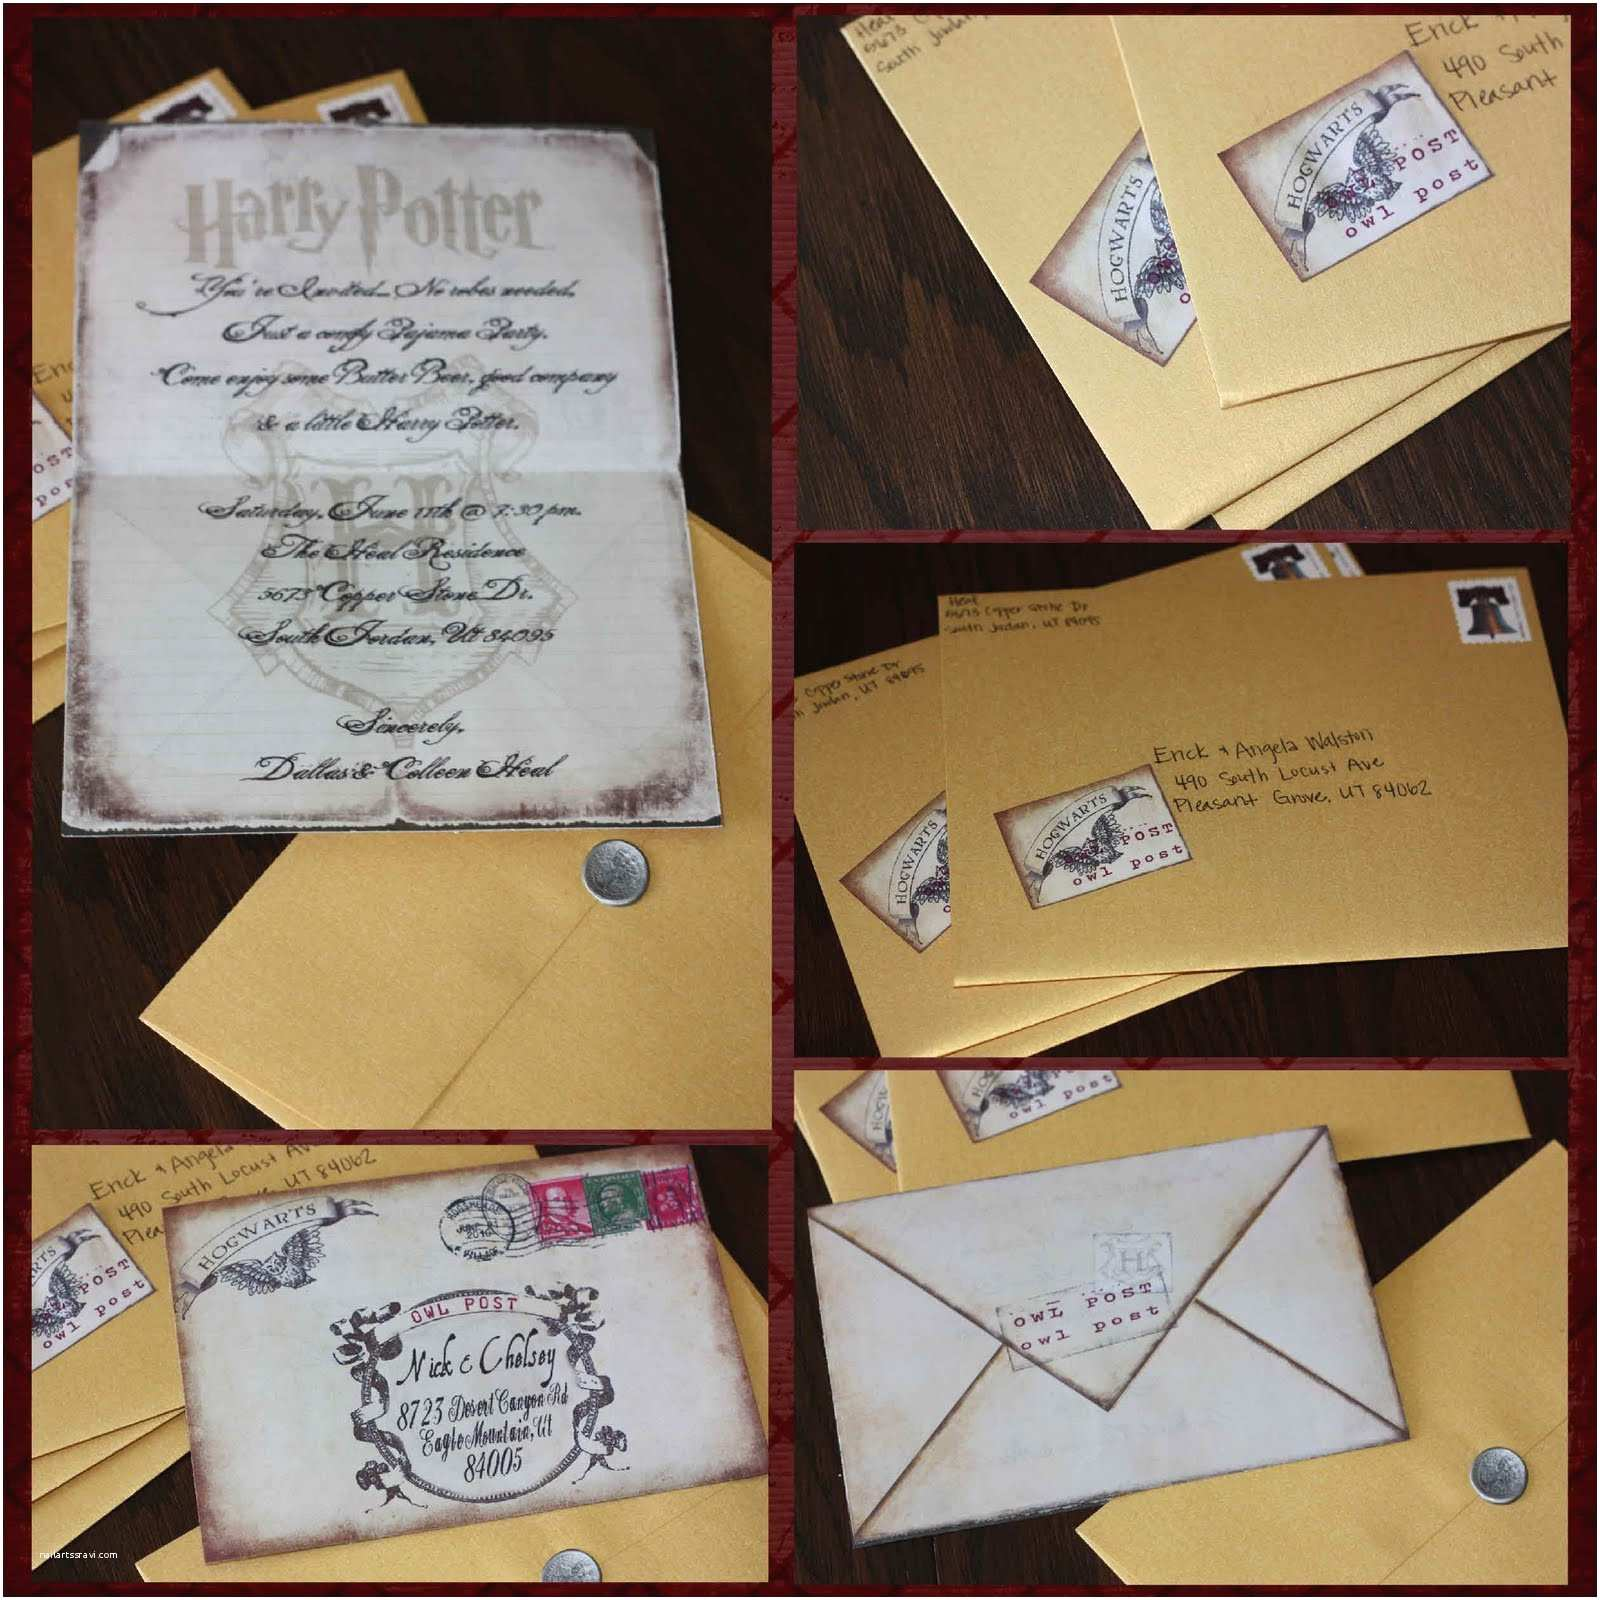 Harry Potter Party Invitations Just Sweet and Simple Harry Potter Invites